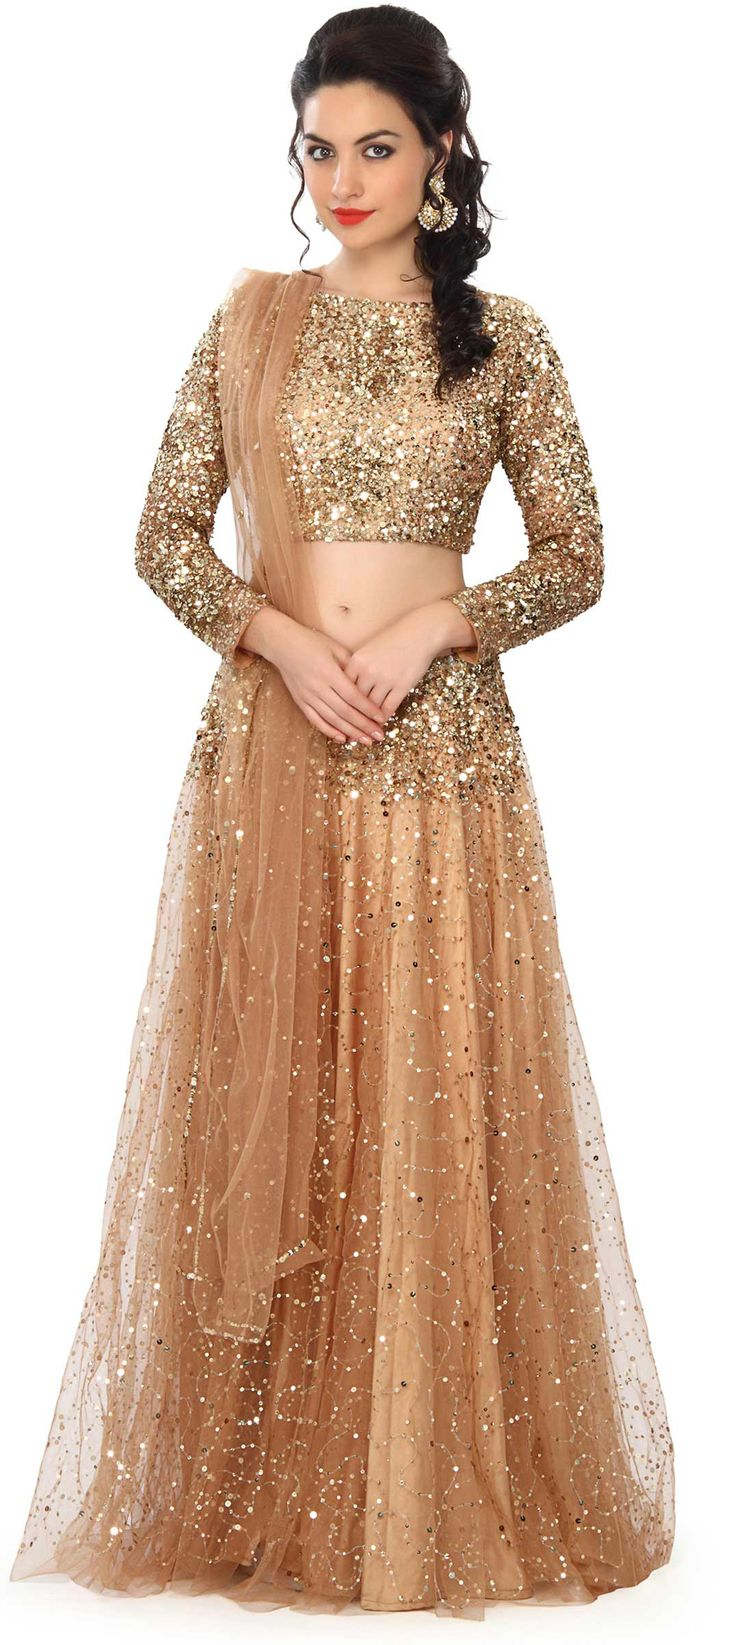 Gold lehenga and blouse featuring in net with satin lining. Its embellished in sequin embroidery all over.   We ship worldwide (Free Shipping over US$100) Price - $379.00 Click Anywhere to Tag  http://www.kalkifashion.com/gold-lehenga-embellished-in-sequin-embroidery-only-on-kalki.html